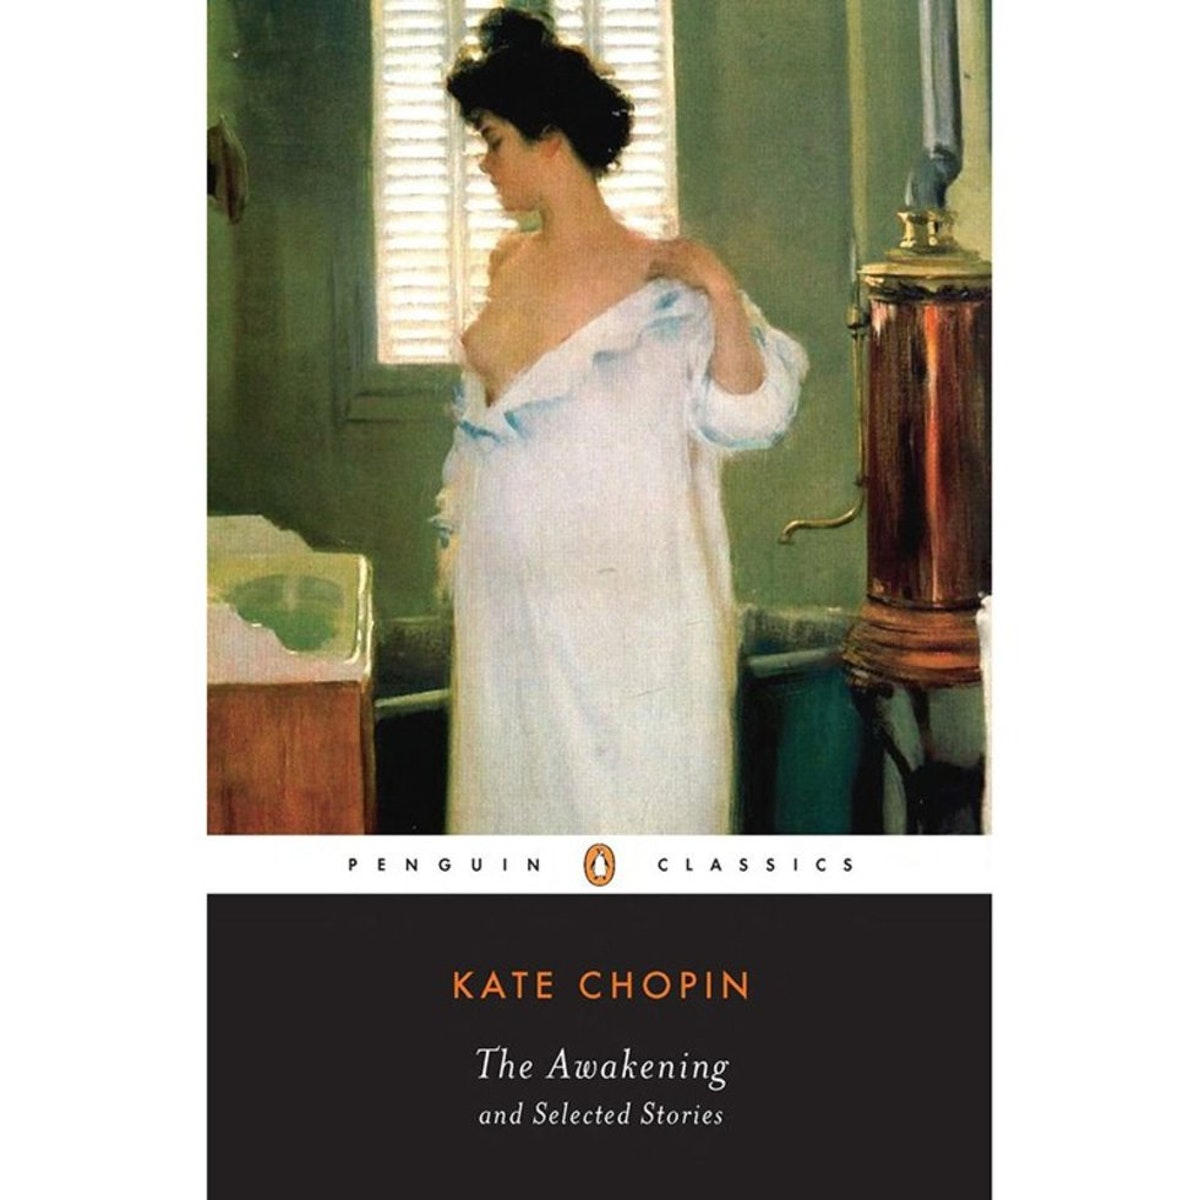 kate chopin women s oppression Women's roles in the nineteenth century dickinson kate chopin, and charlotte marriage, masculine oppression.